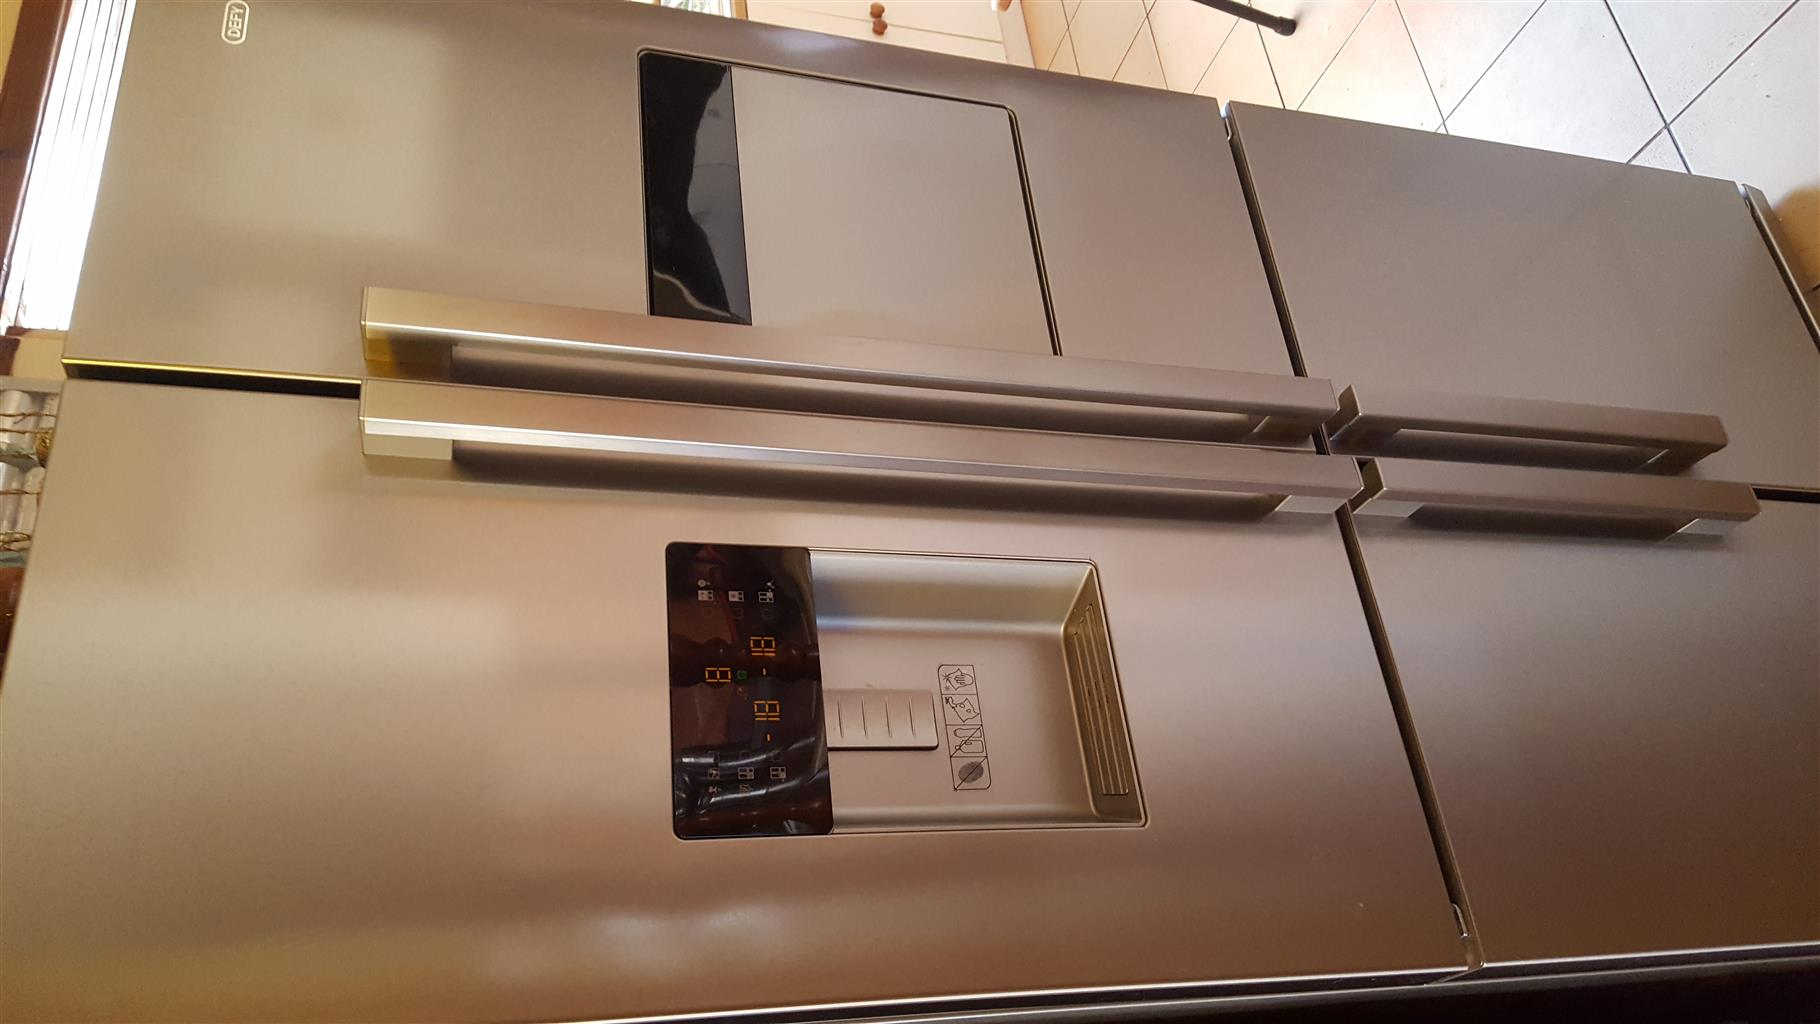 DEFY DFF399 G605 ECO STAINLESS STEEL SIDE BY SIDE FRIDGE